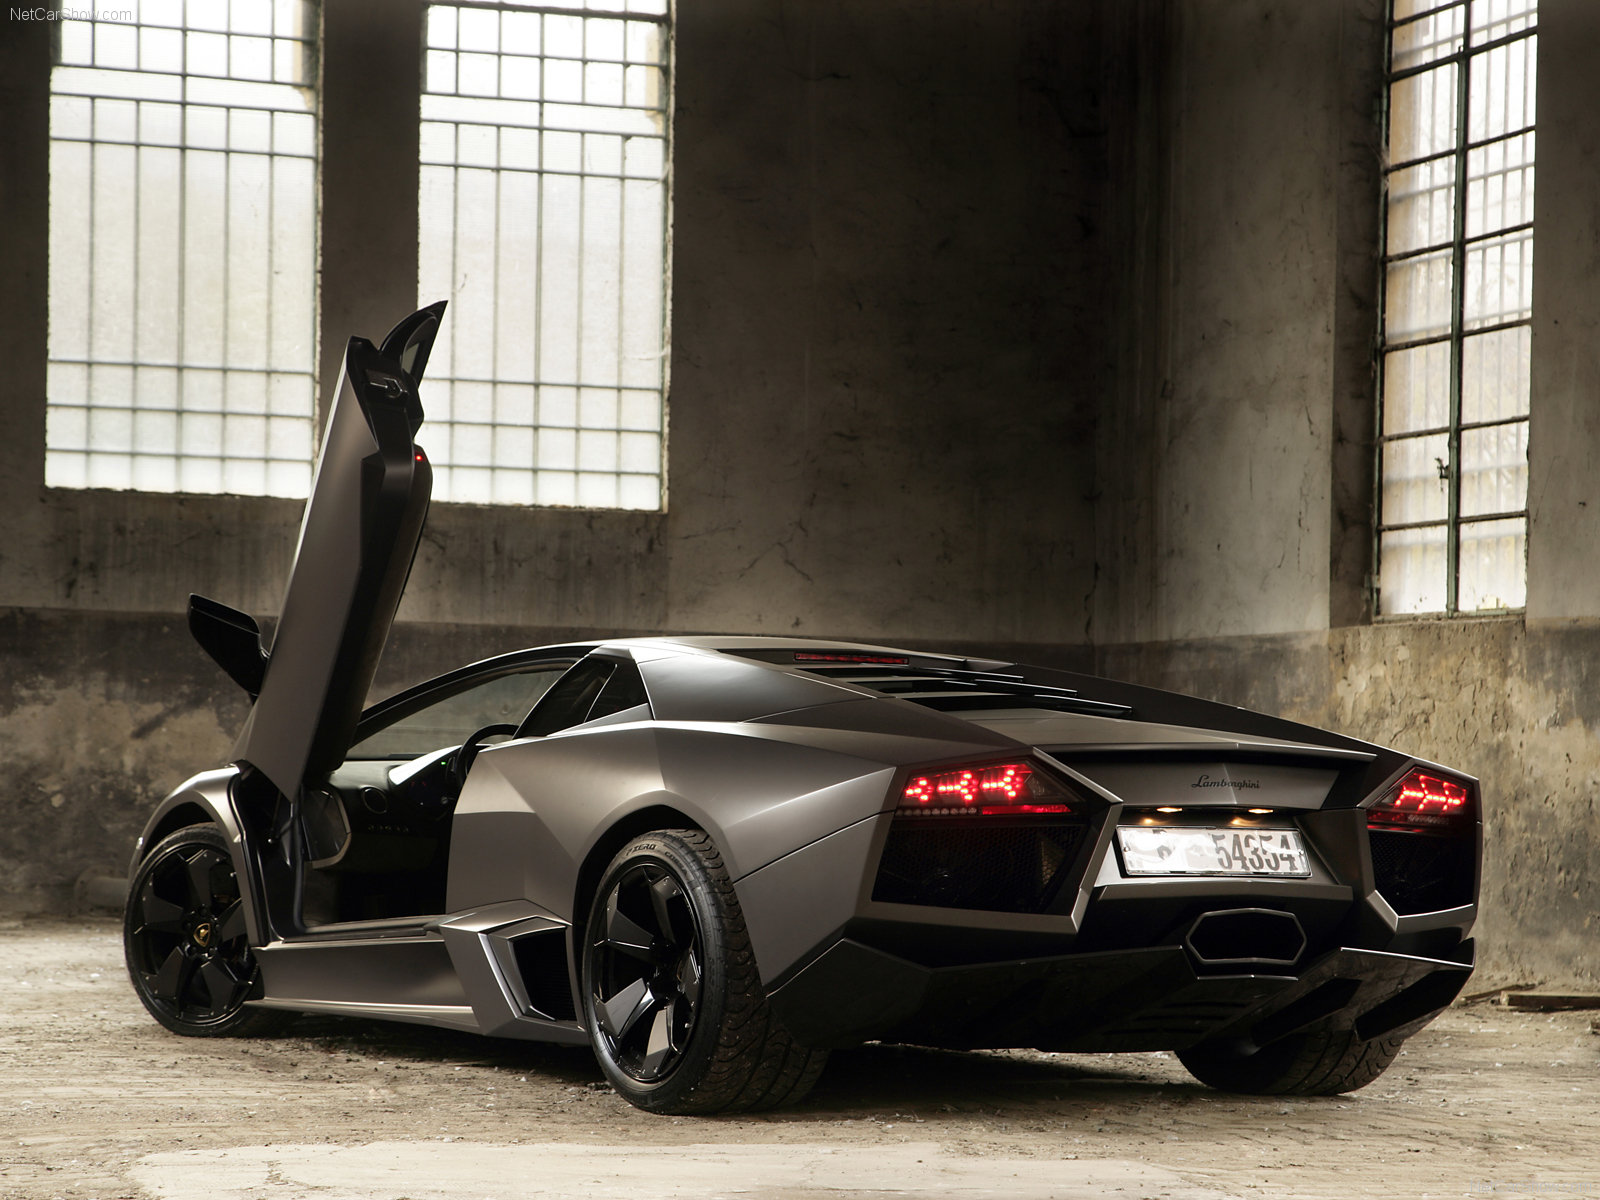 hd car wallpapers lamborghini reventon wallpaper. Black Bedroom Furniture Sets. Home Design Ideas